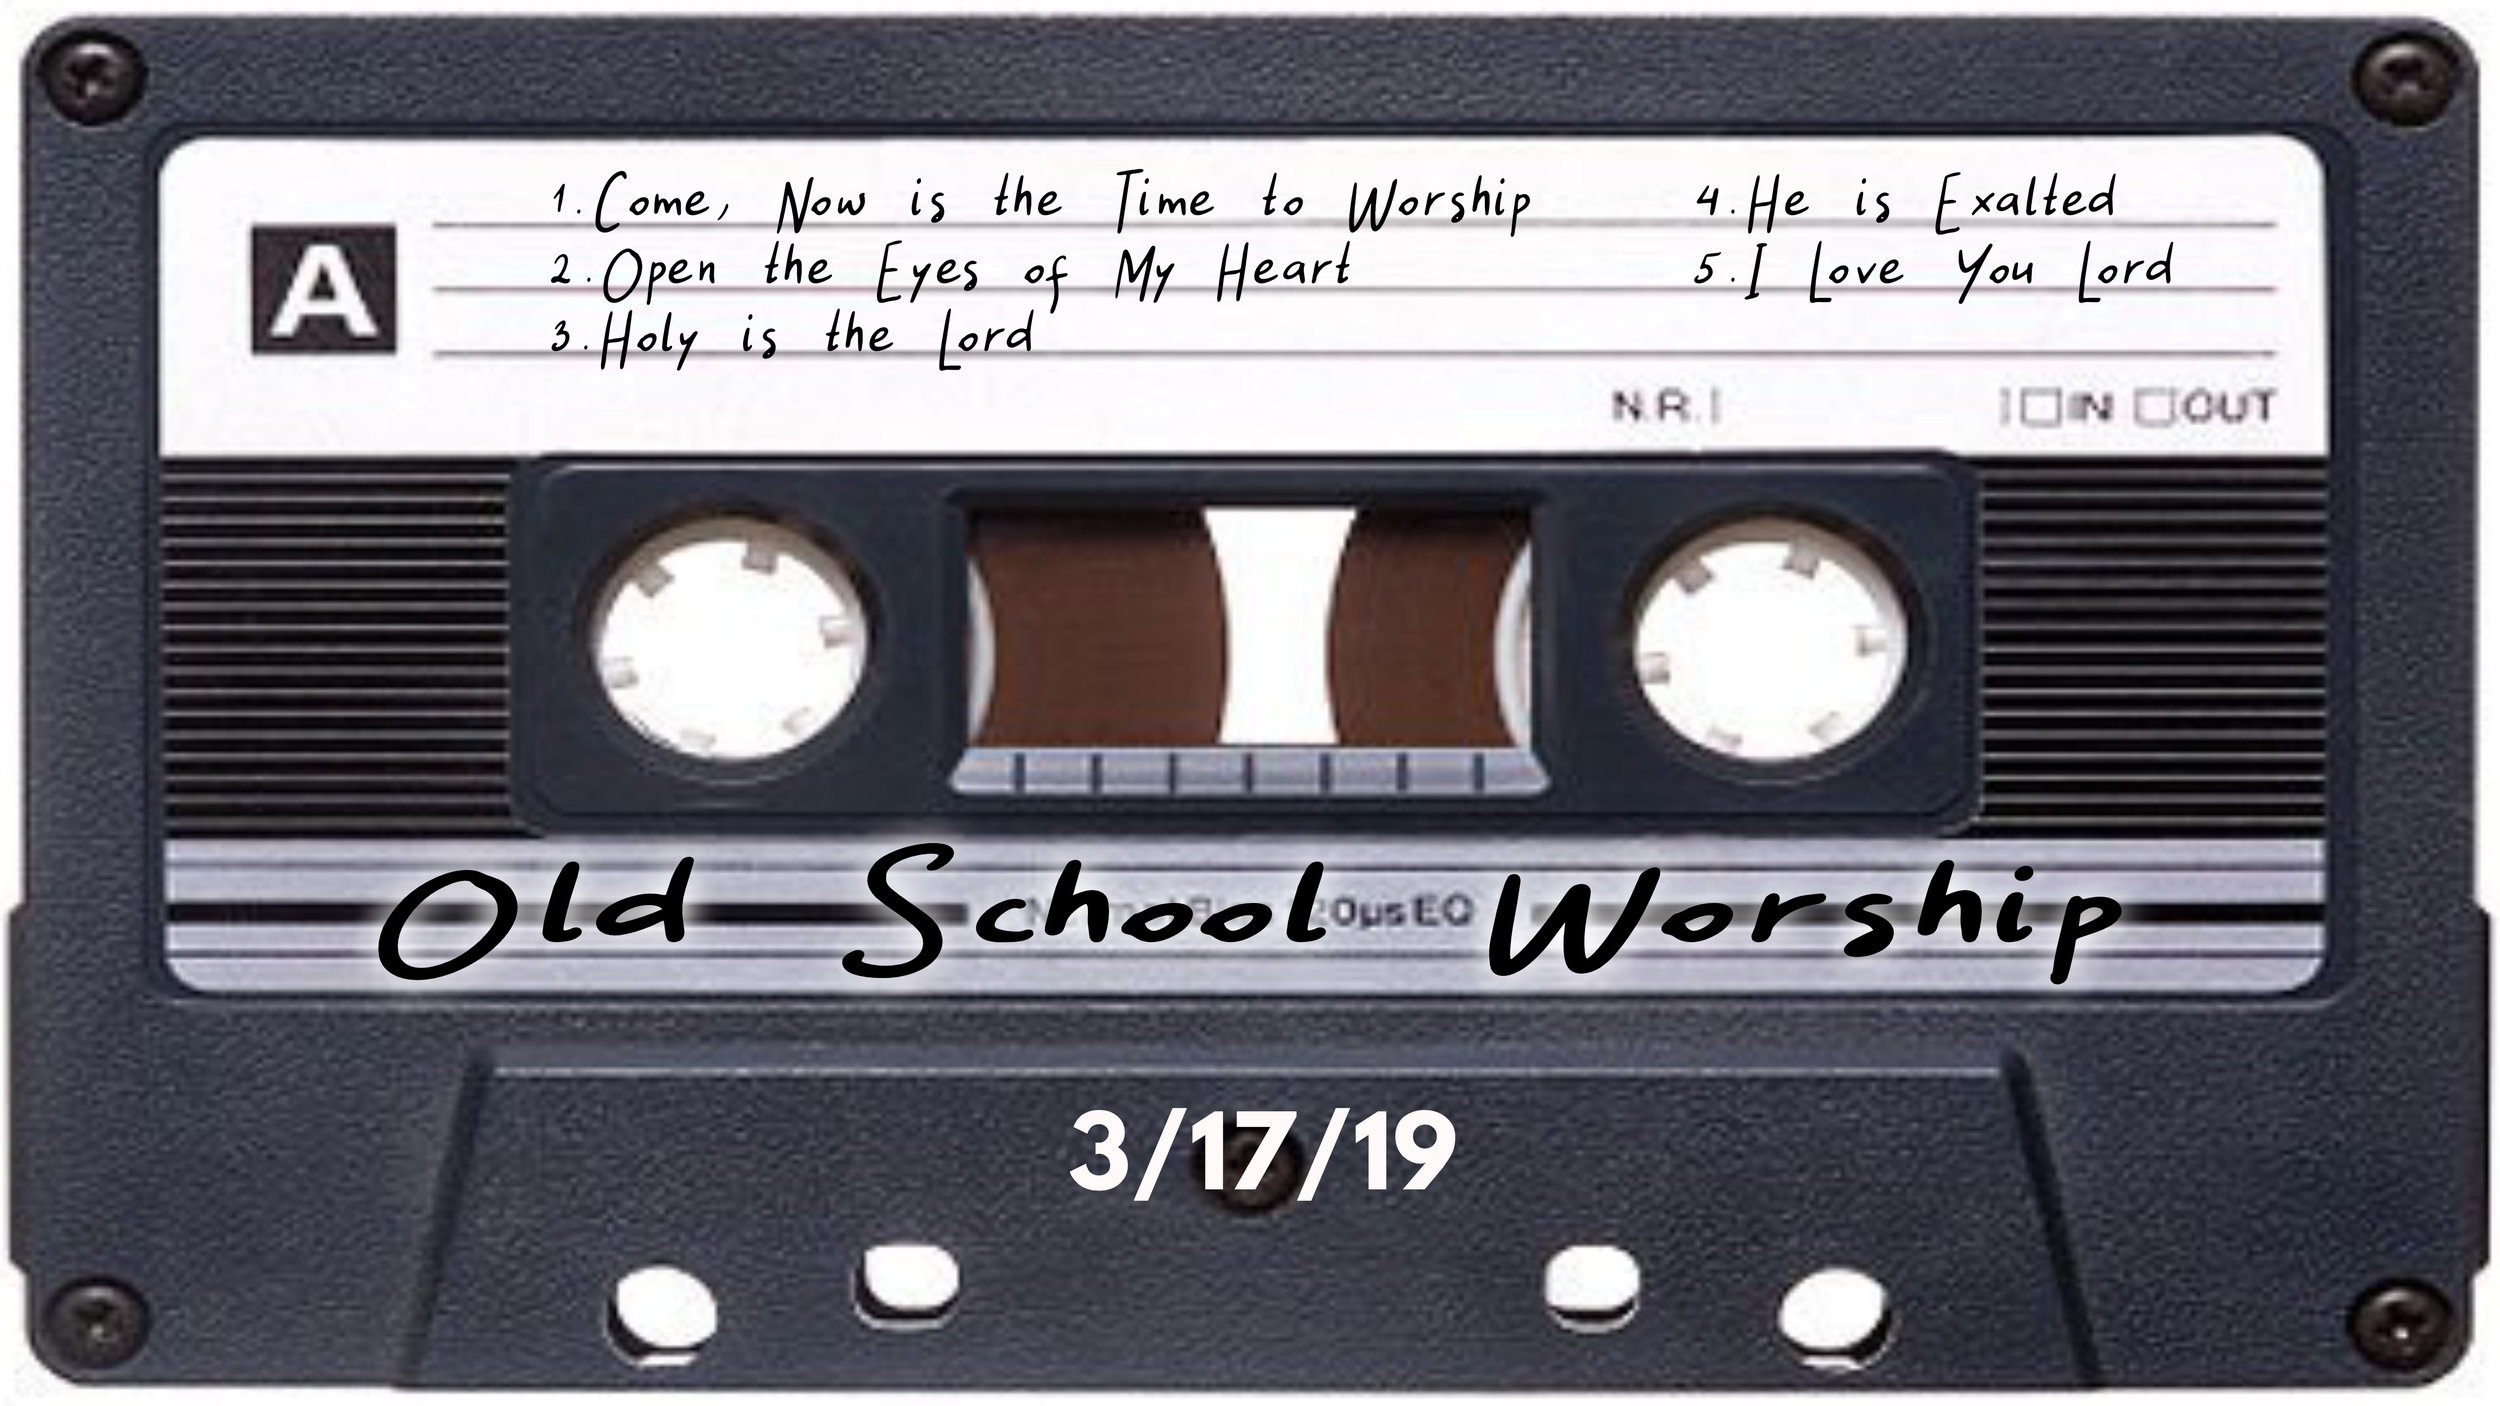 2019.03.17 Old School Worship.jpg